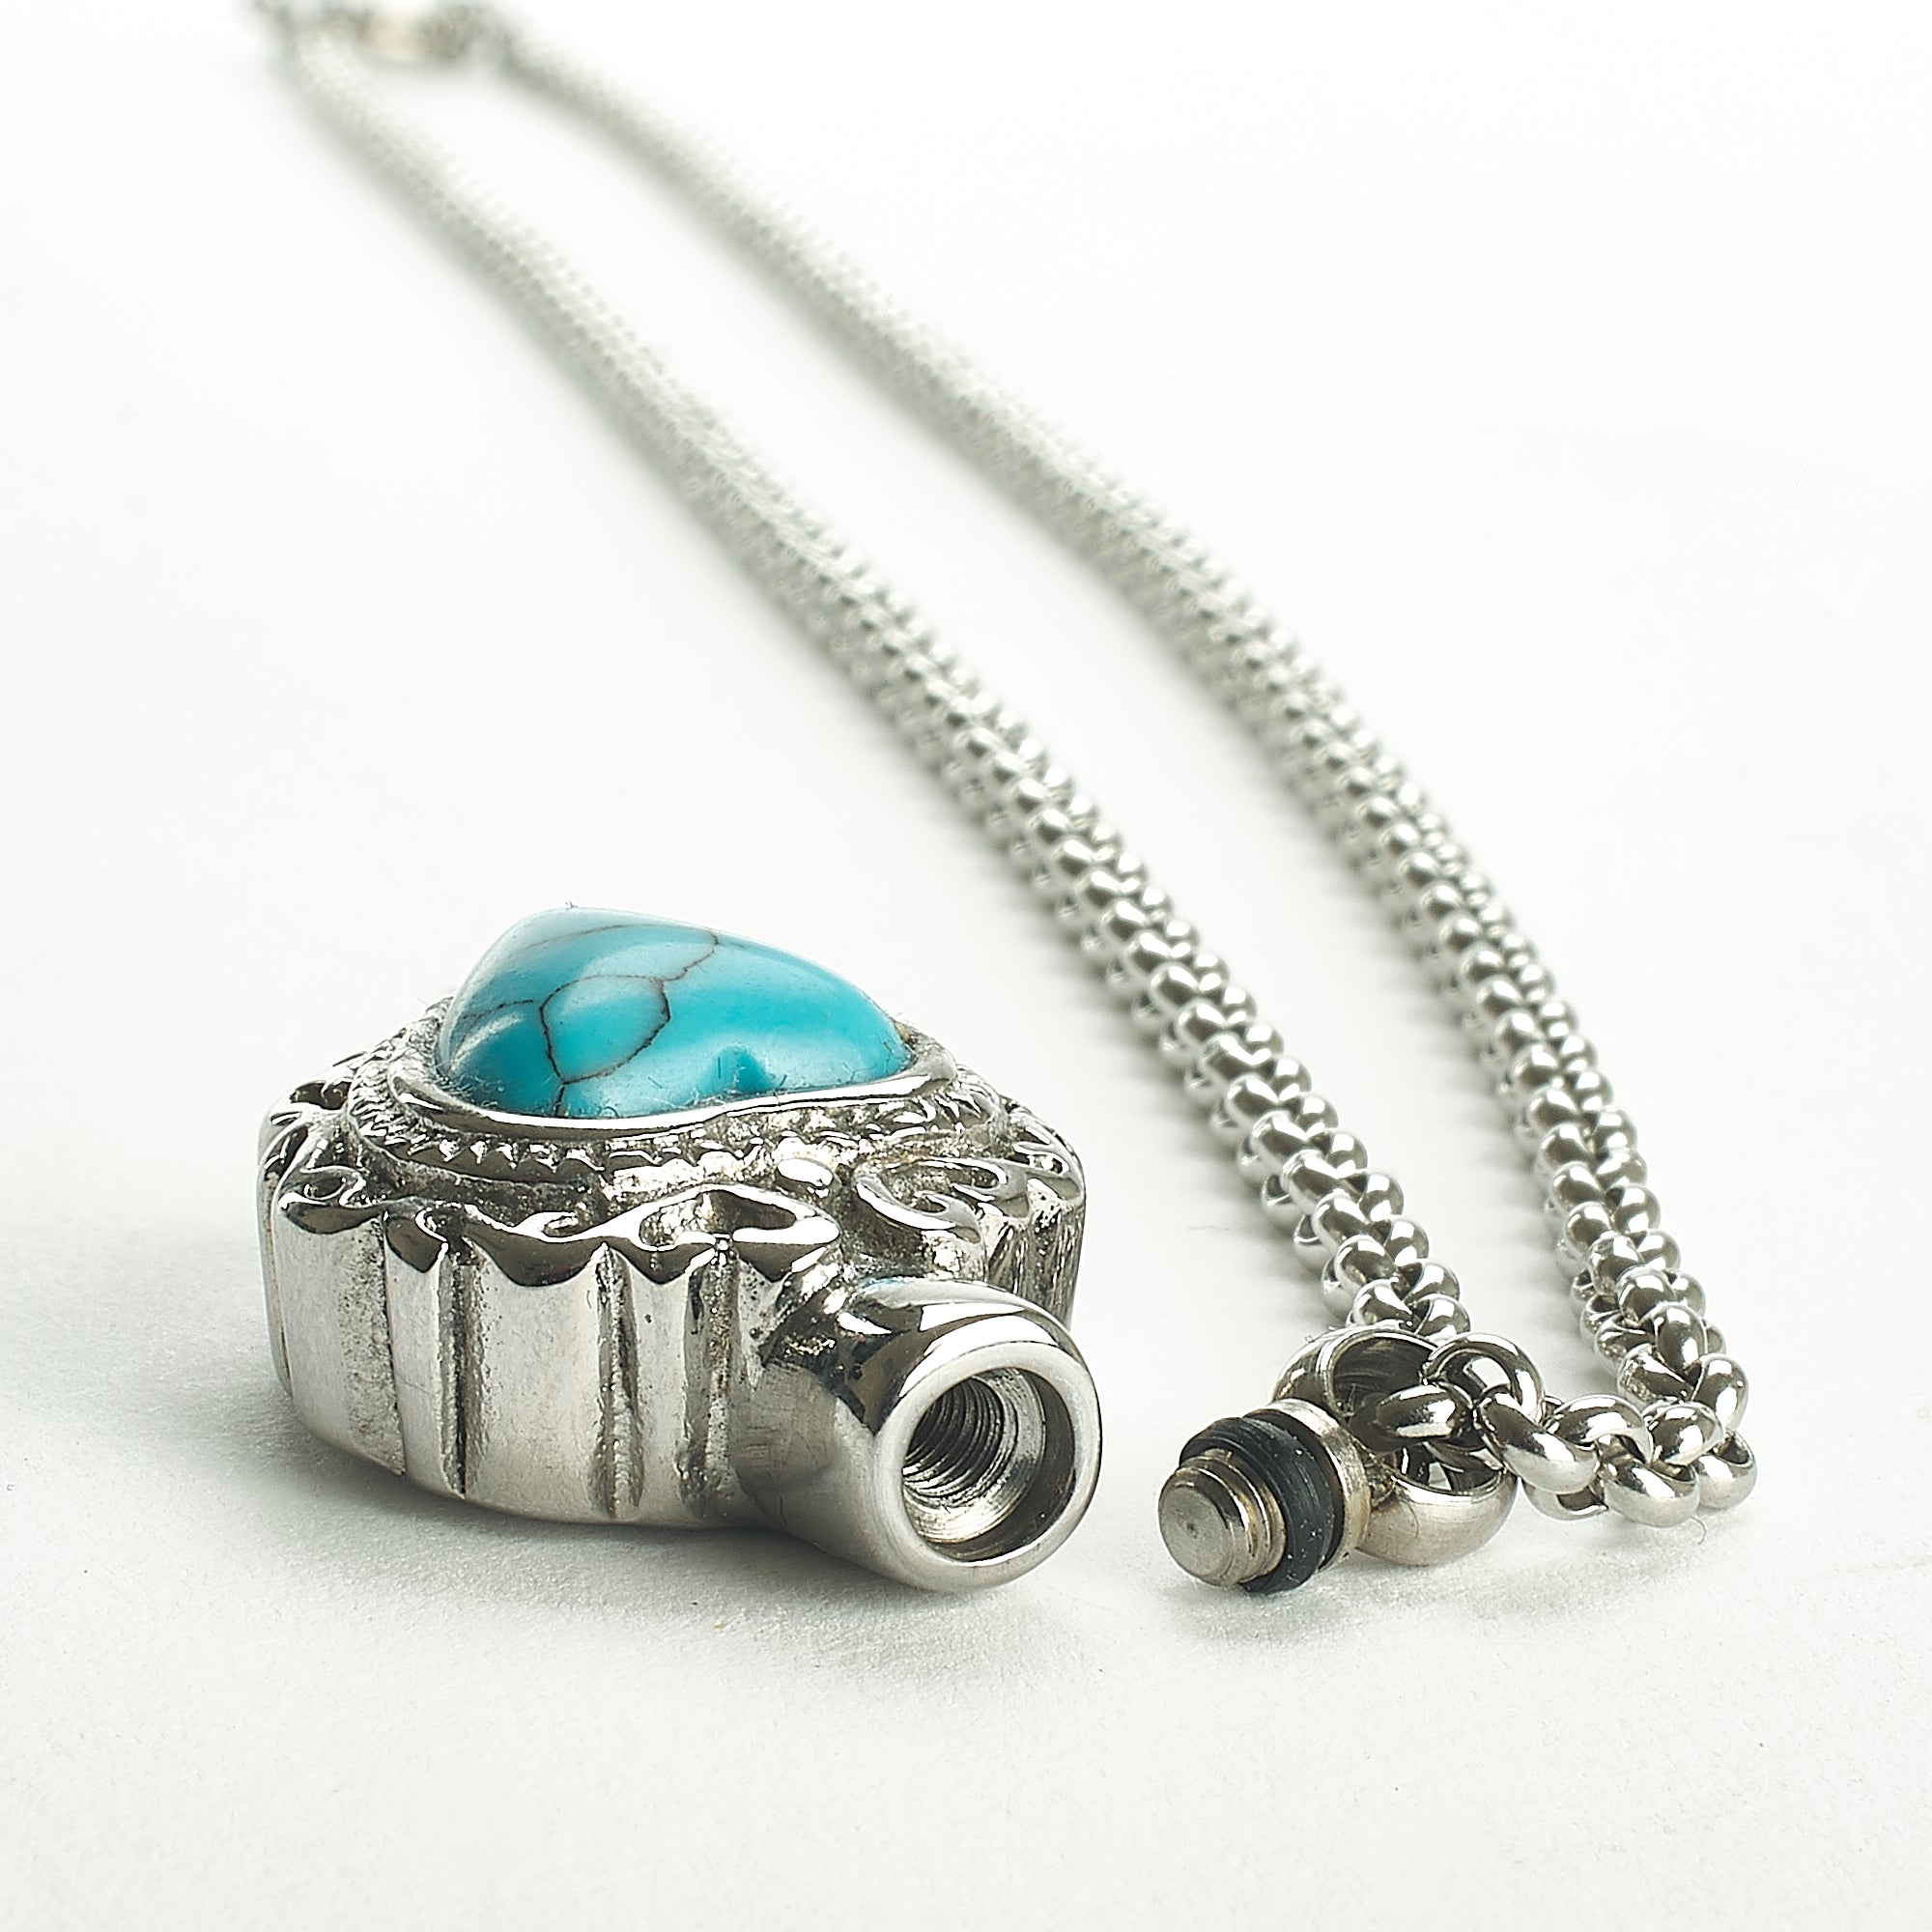 Cremation Pendant - Turquoise - Decorative Small Silver Heart